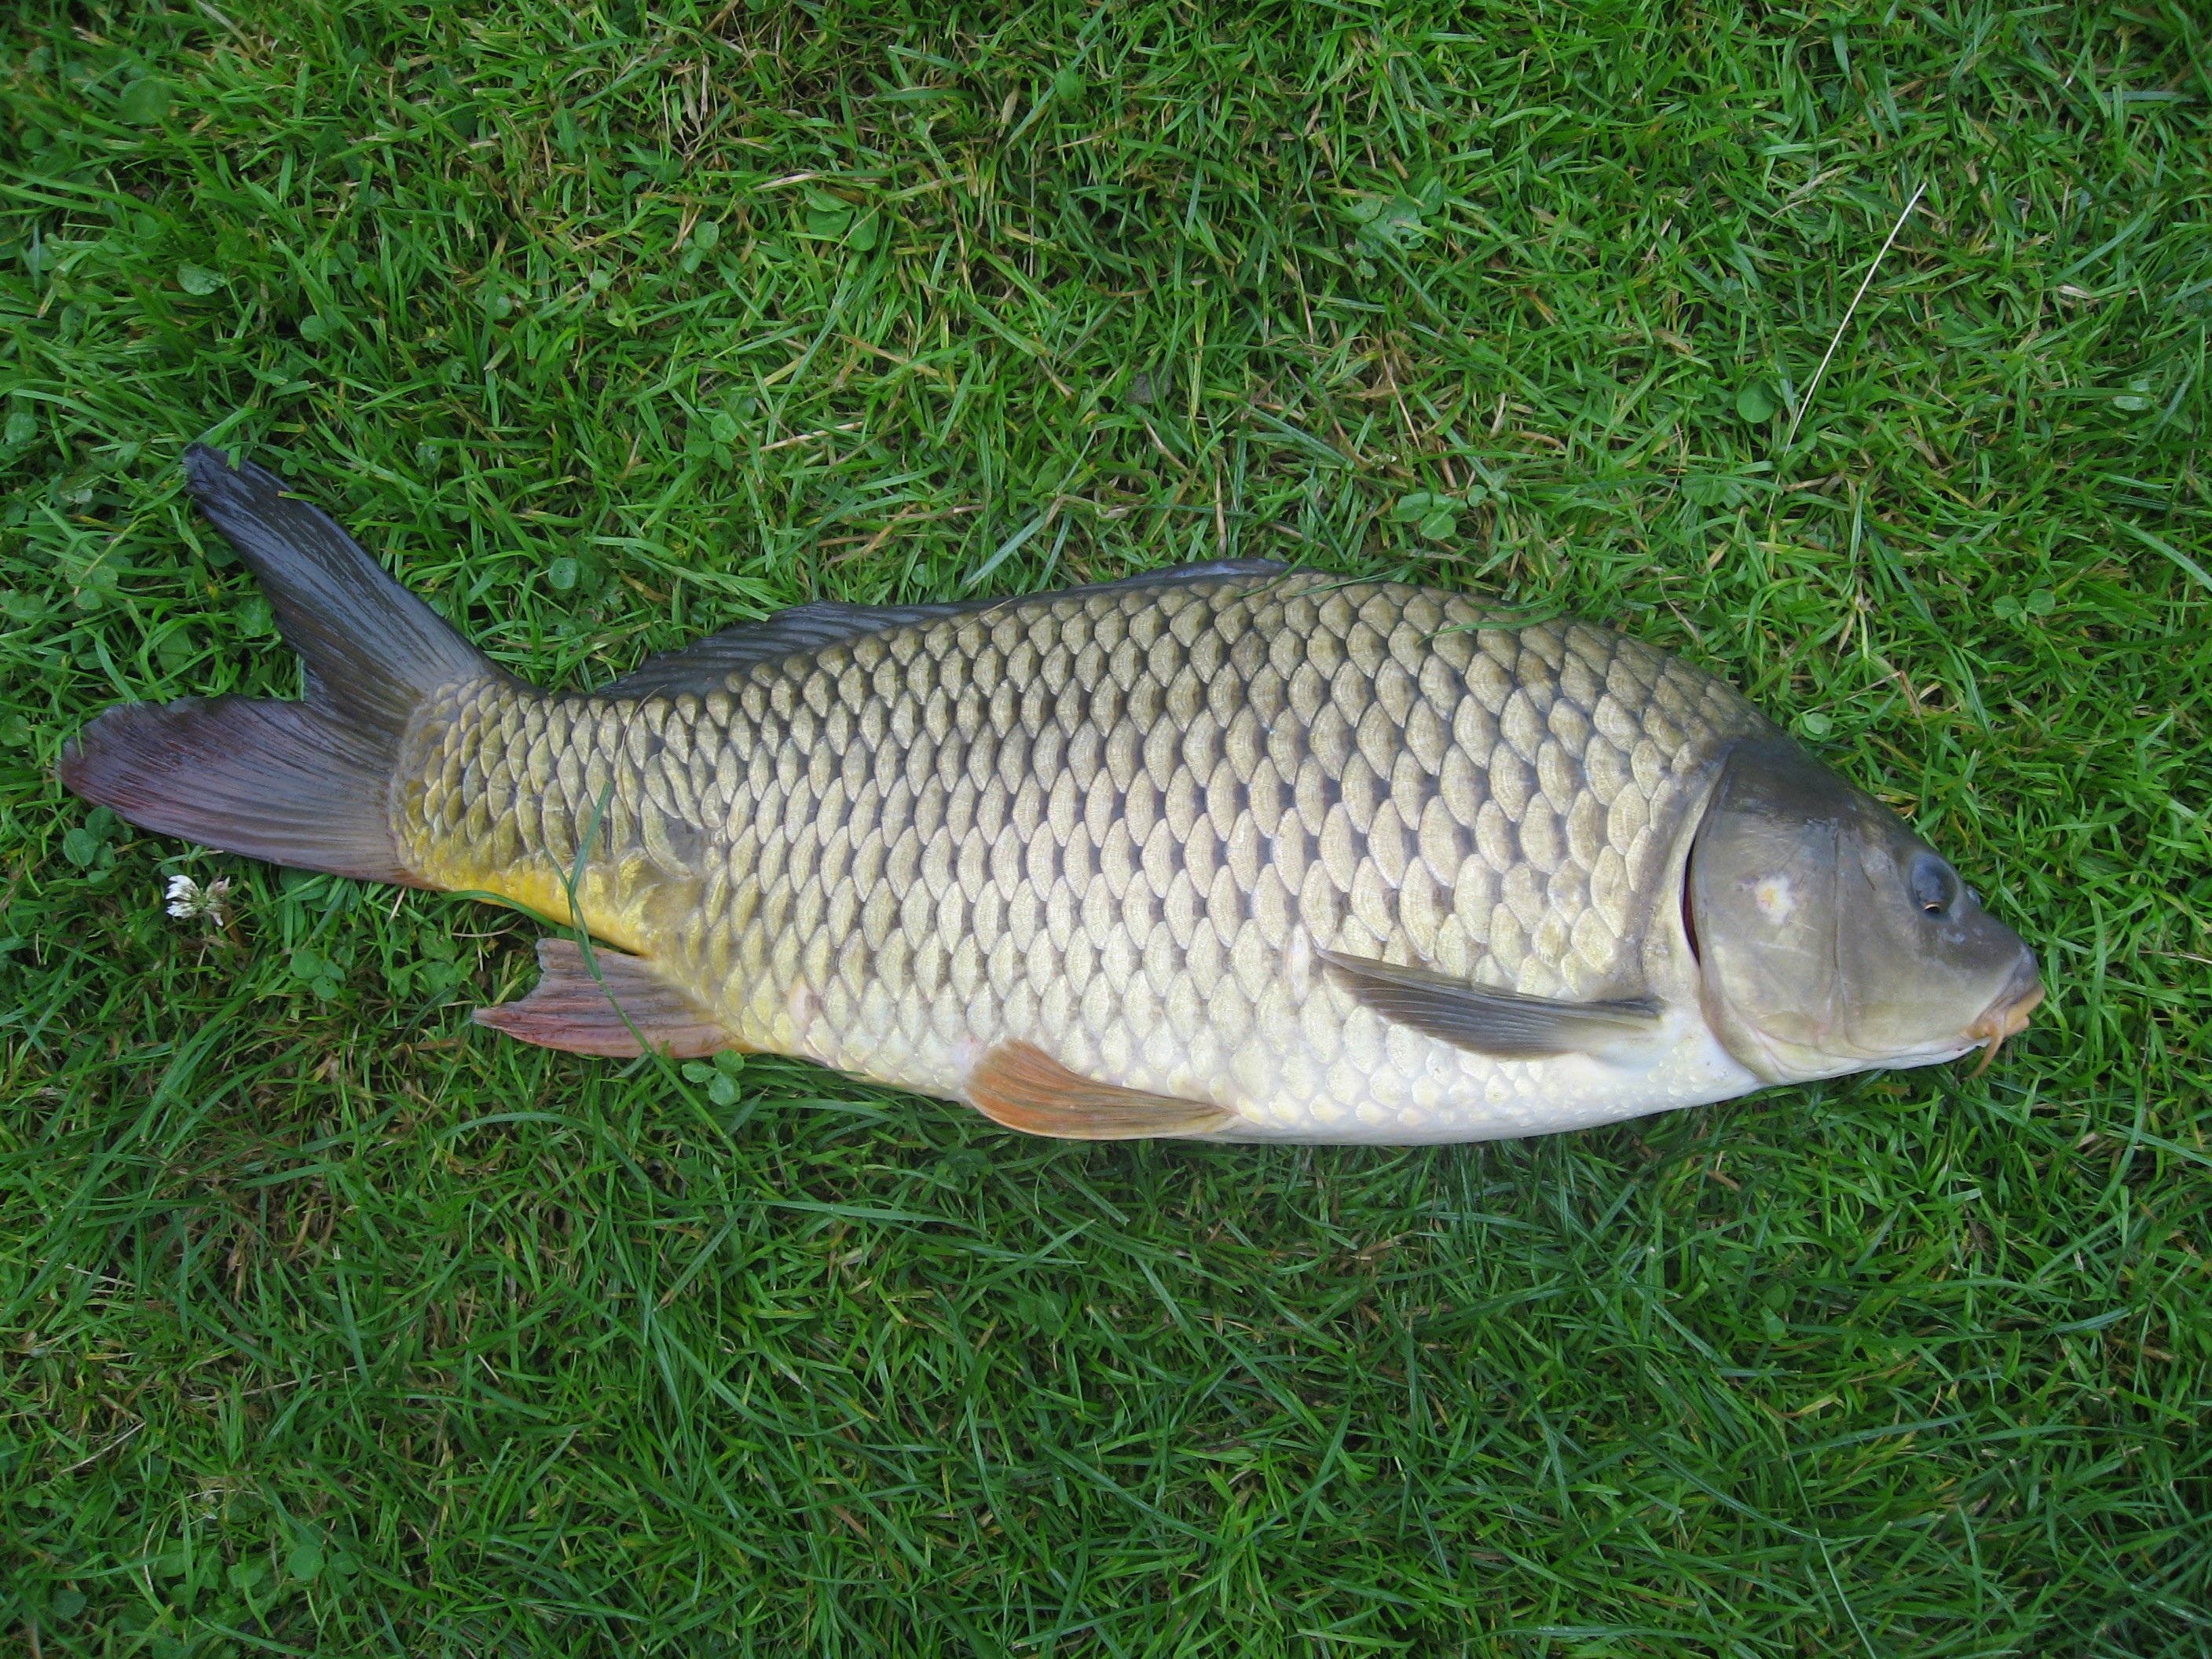 Carp fish, picture by Dezidor